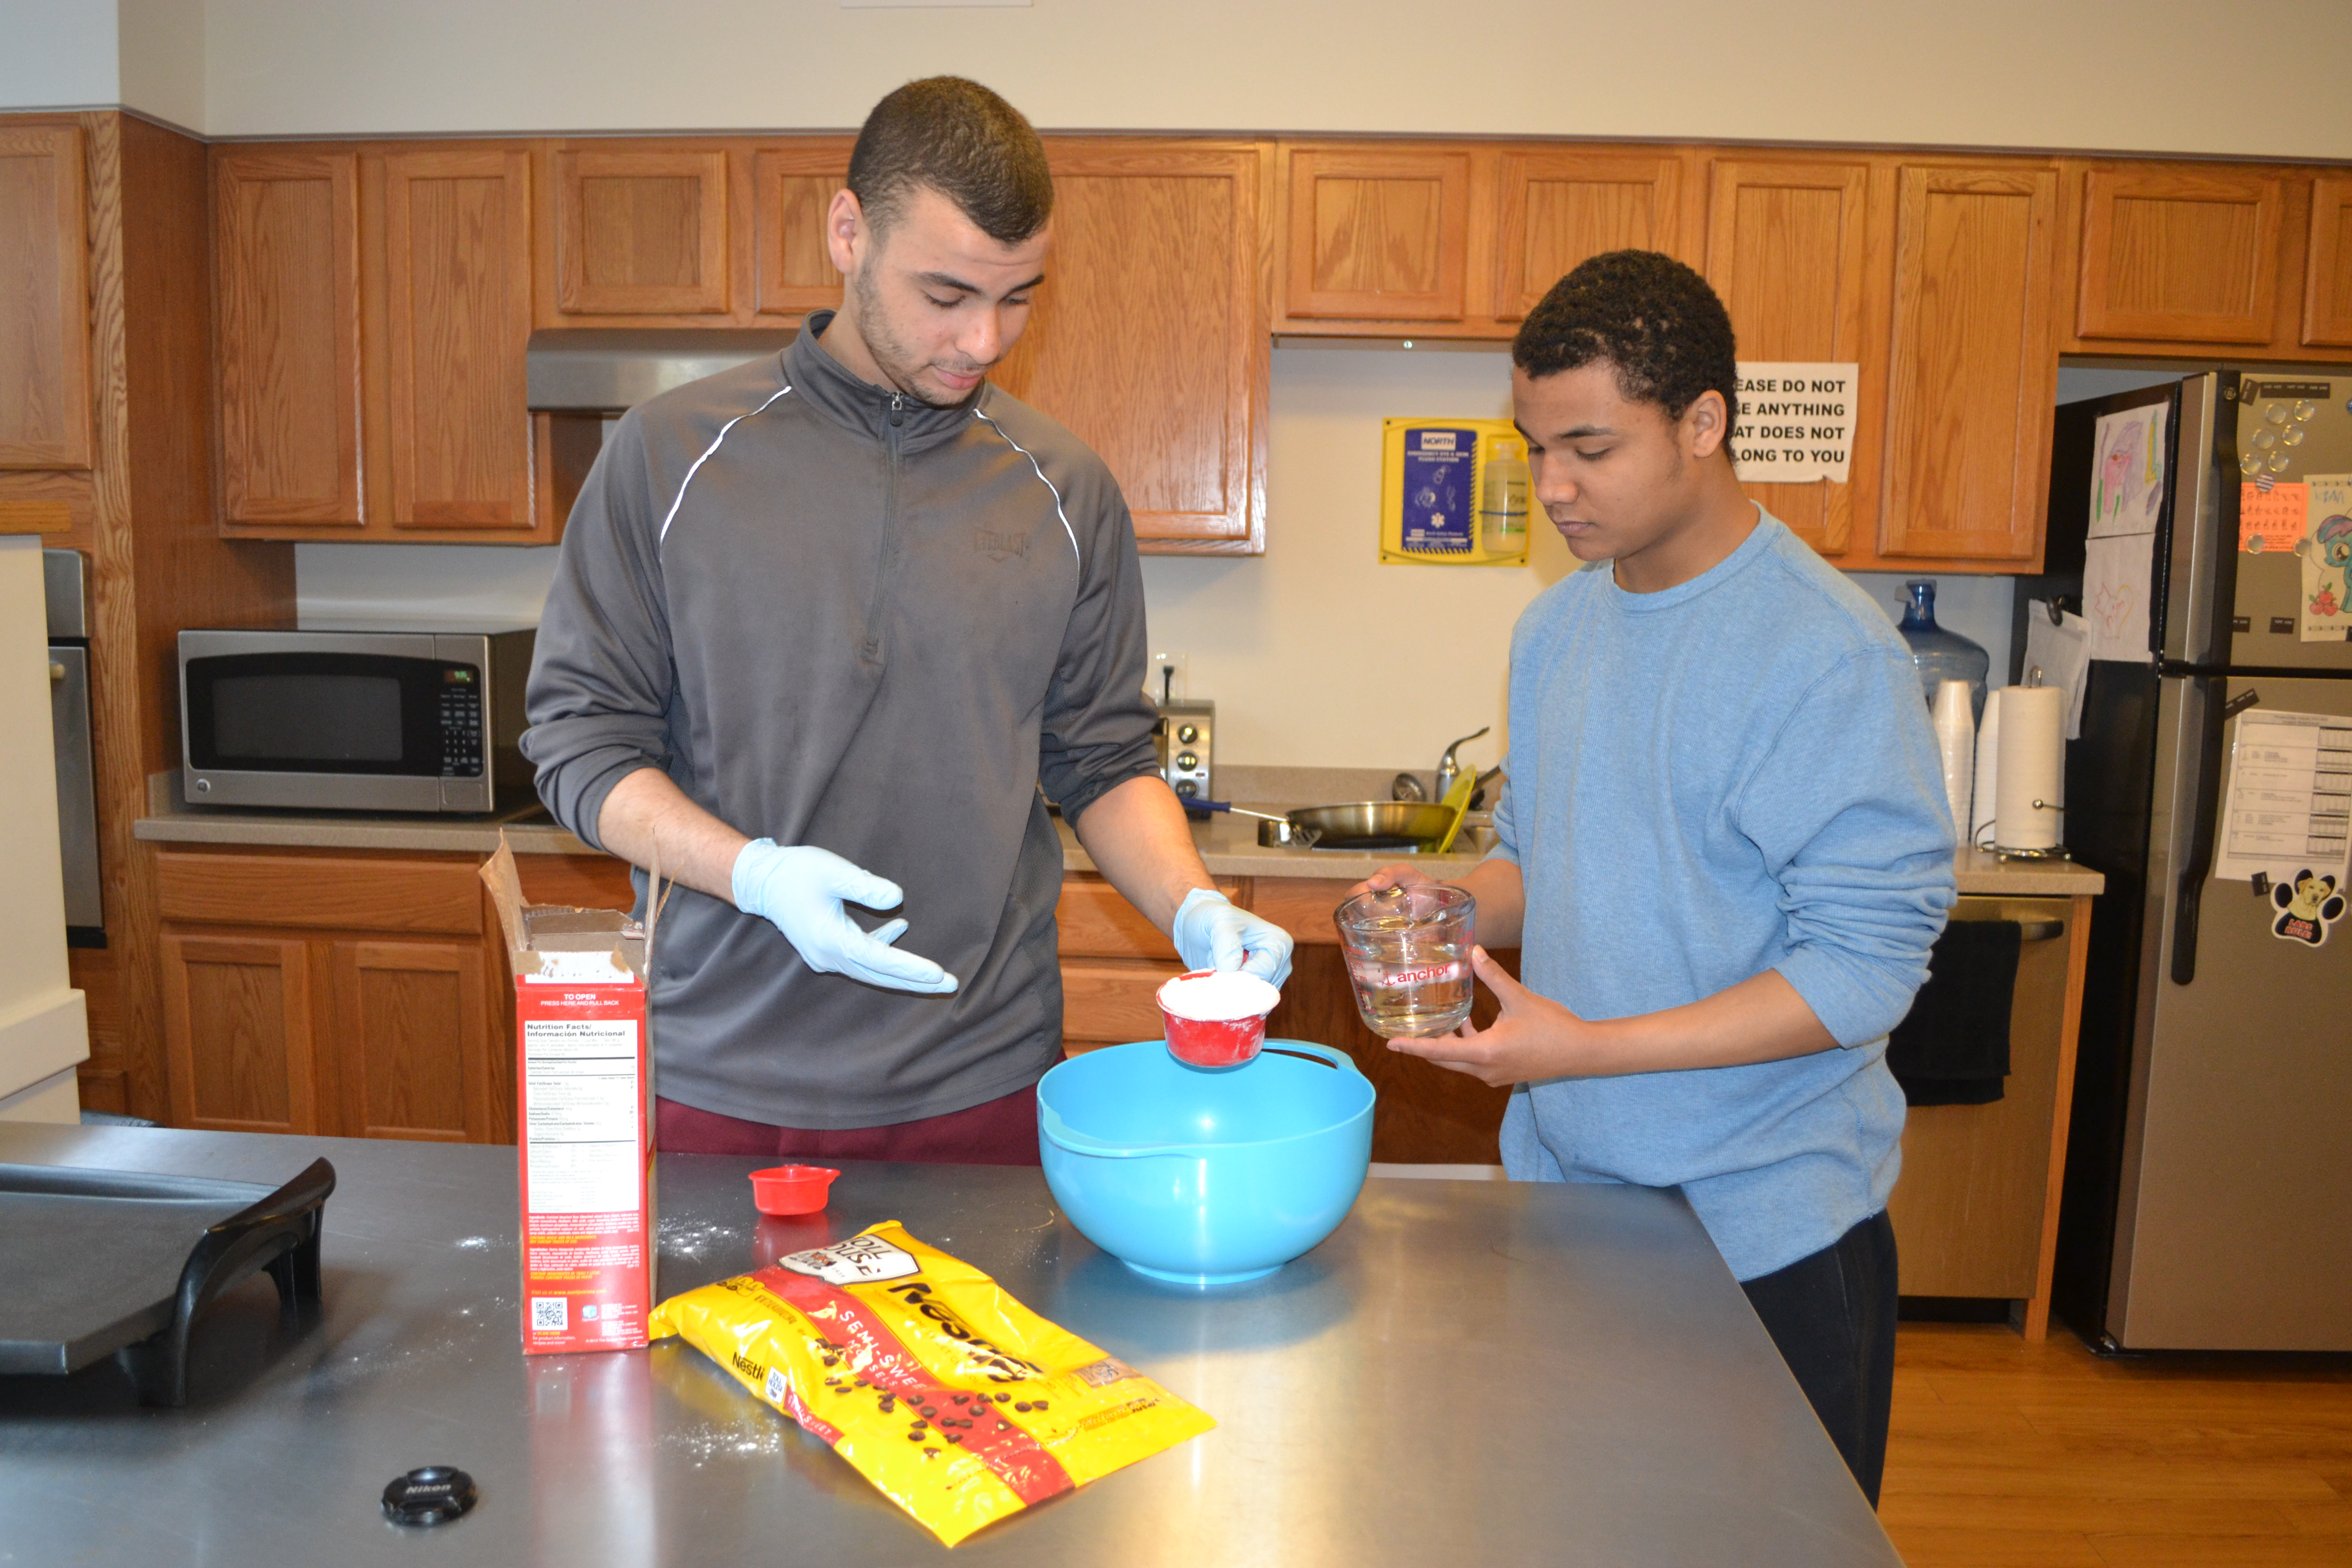 Two young men cooking together